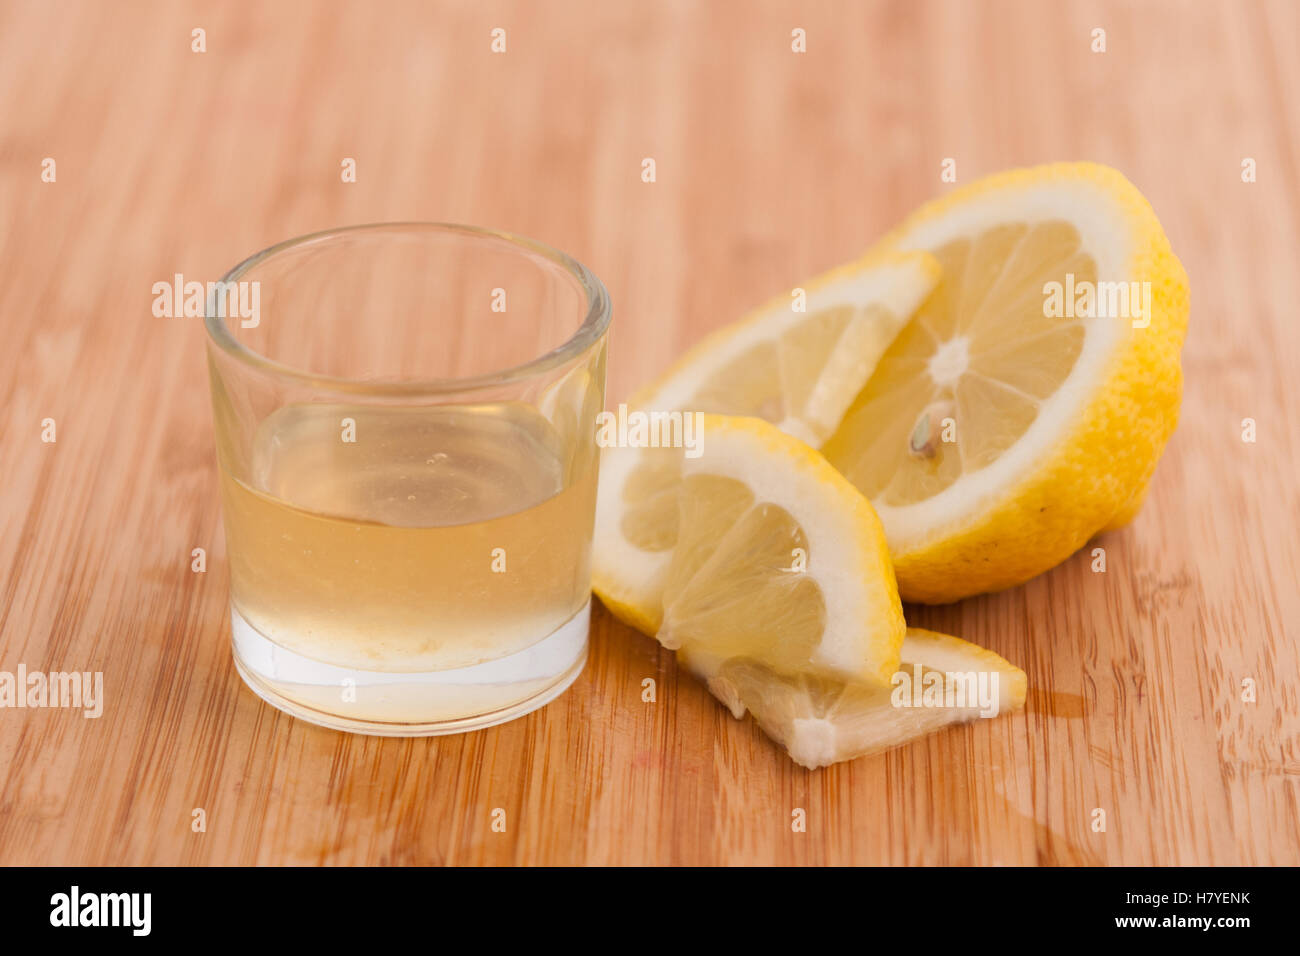 Natural flavored liquid for pastry of lemon - Stock Image